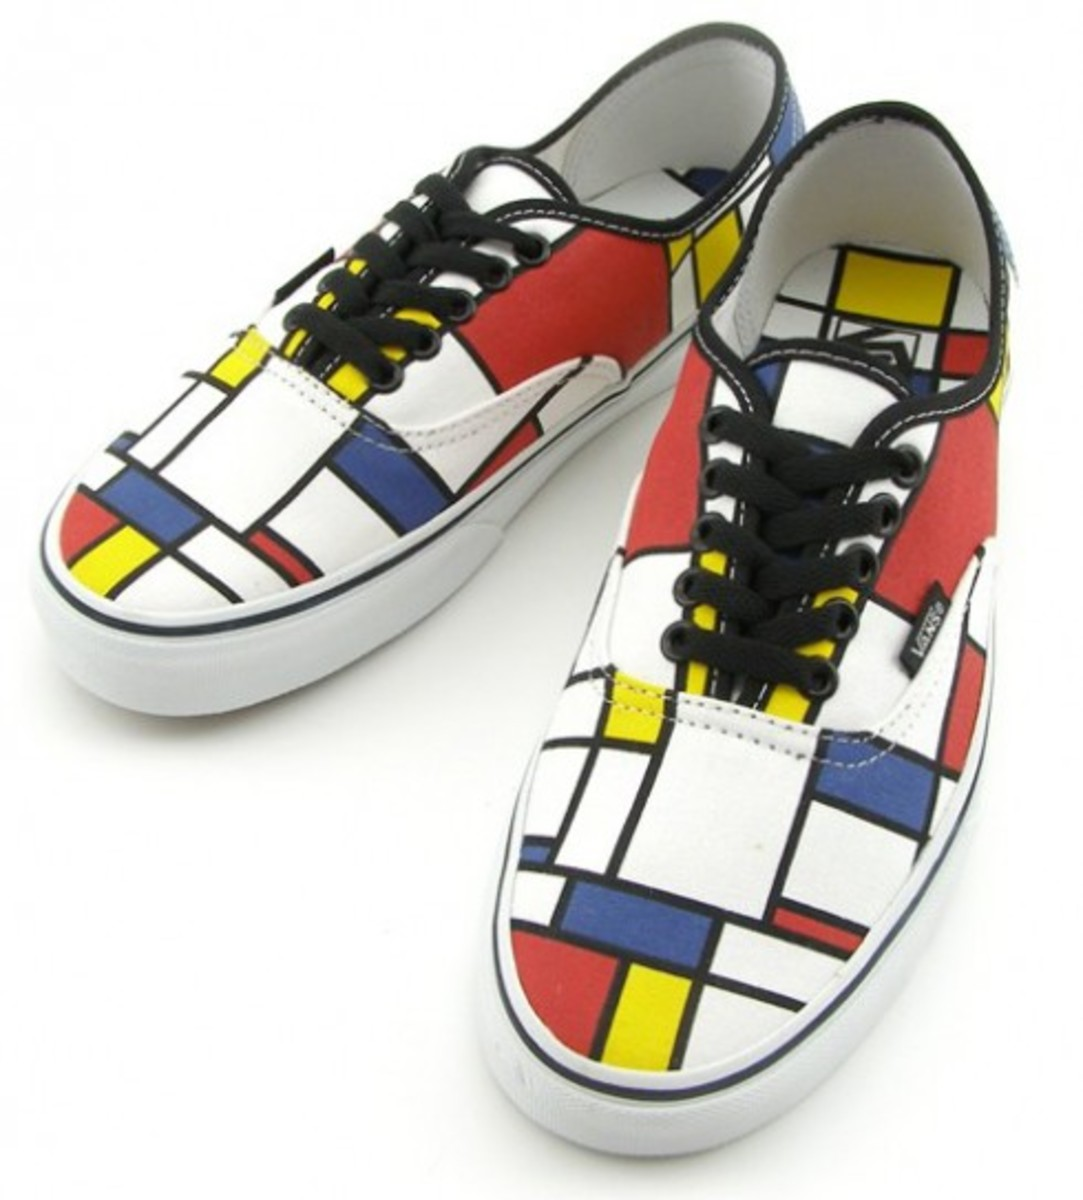 VANS - Modular Authentic - Mondrian Inspired